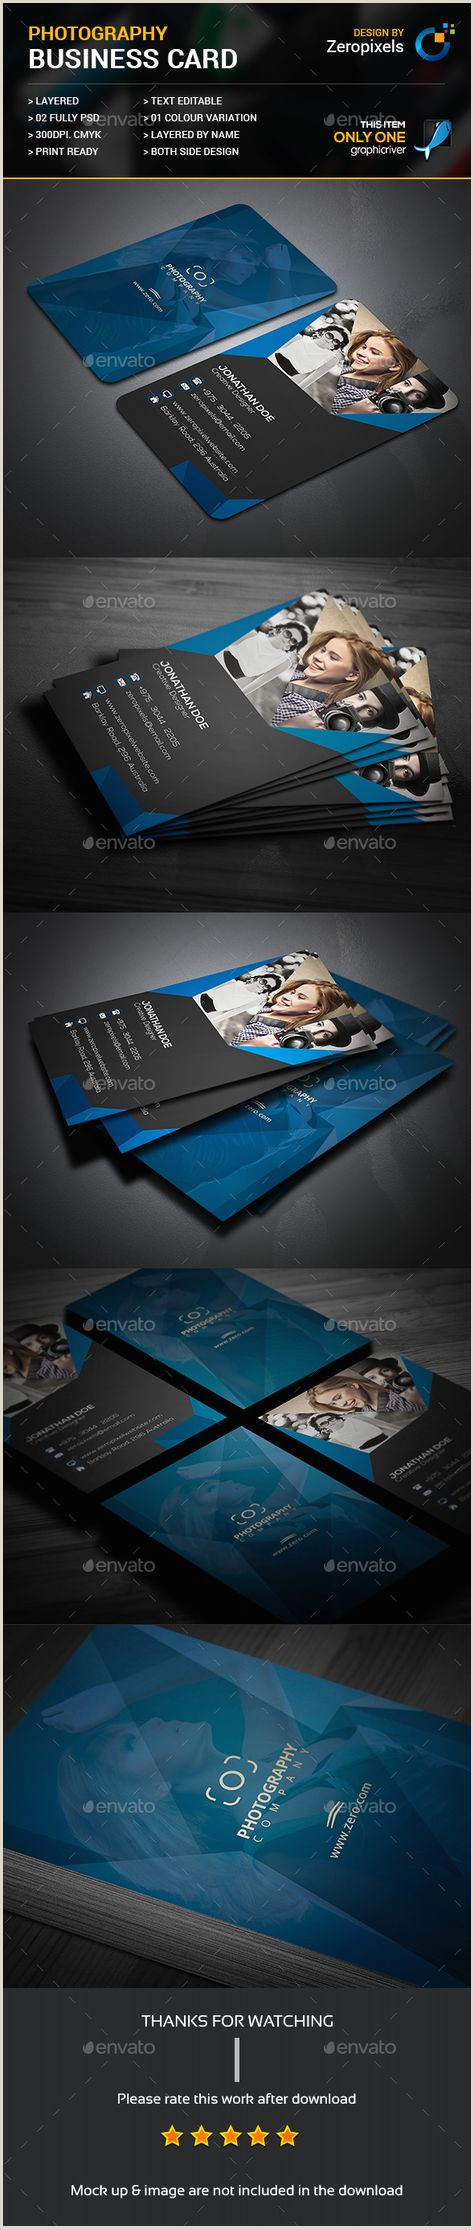 Website For Business Cards Graphy Business Cards Template Free 70 Trendy Ideas